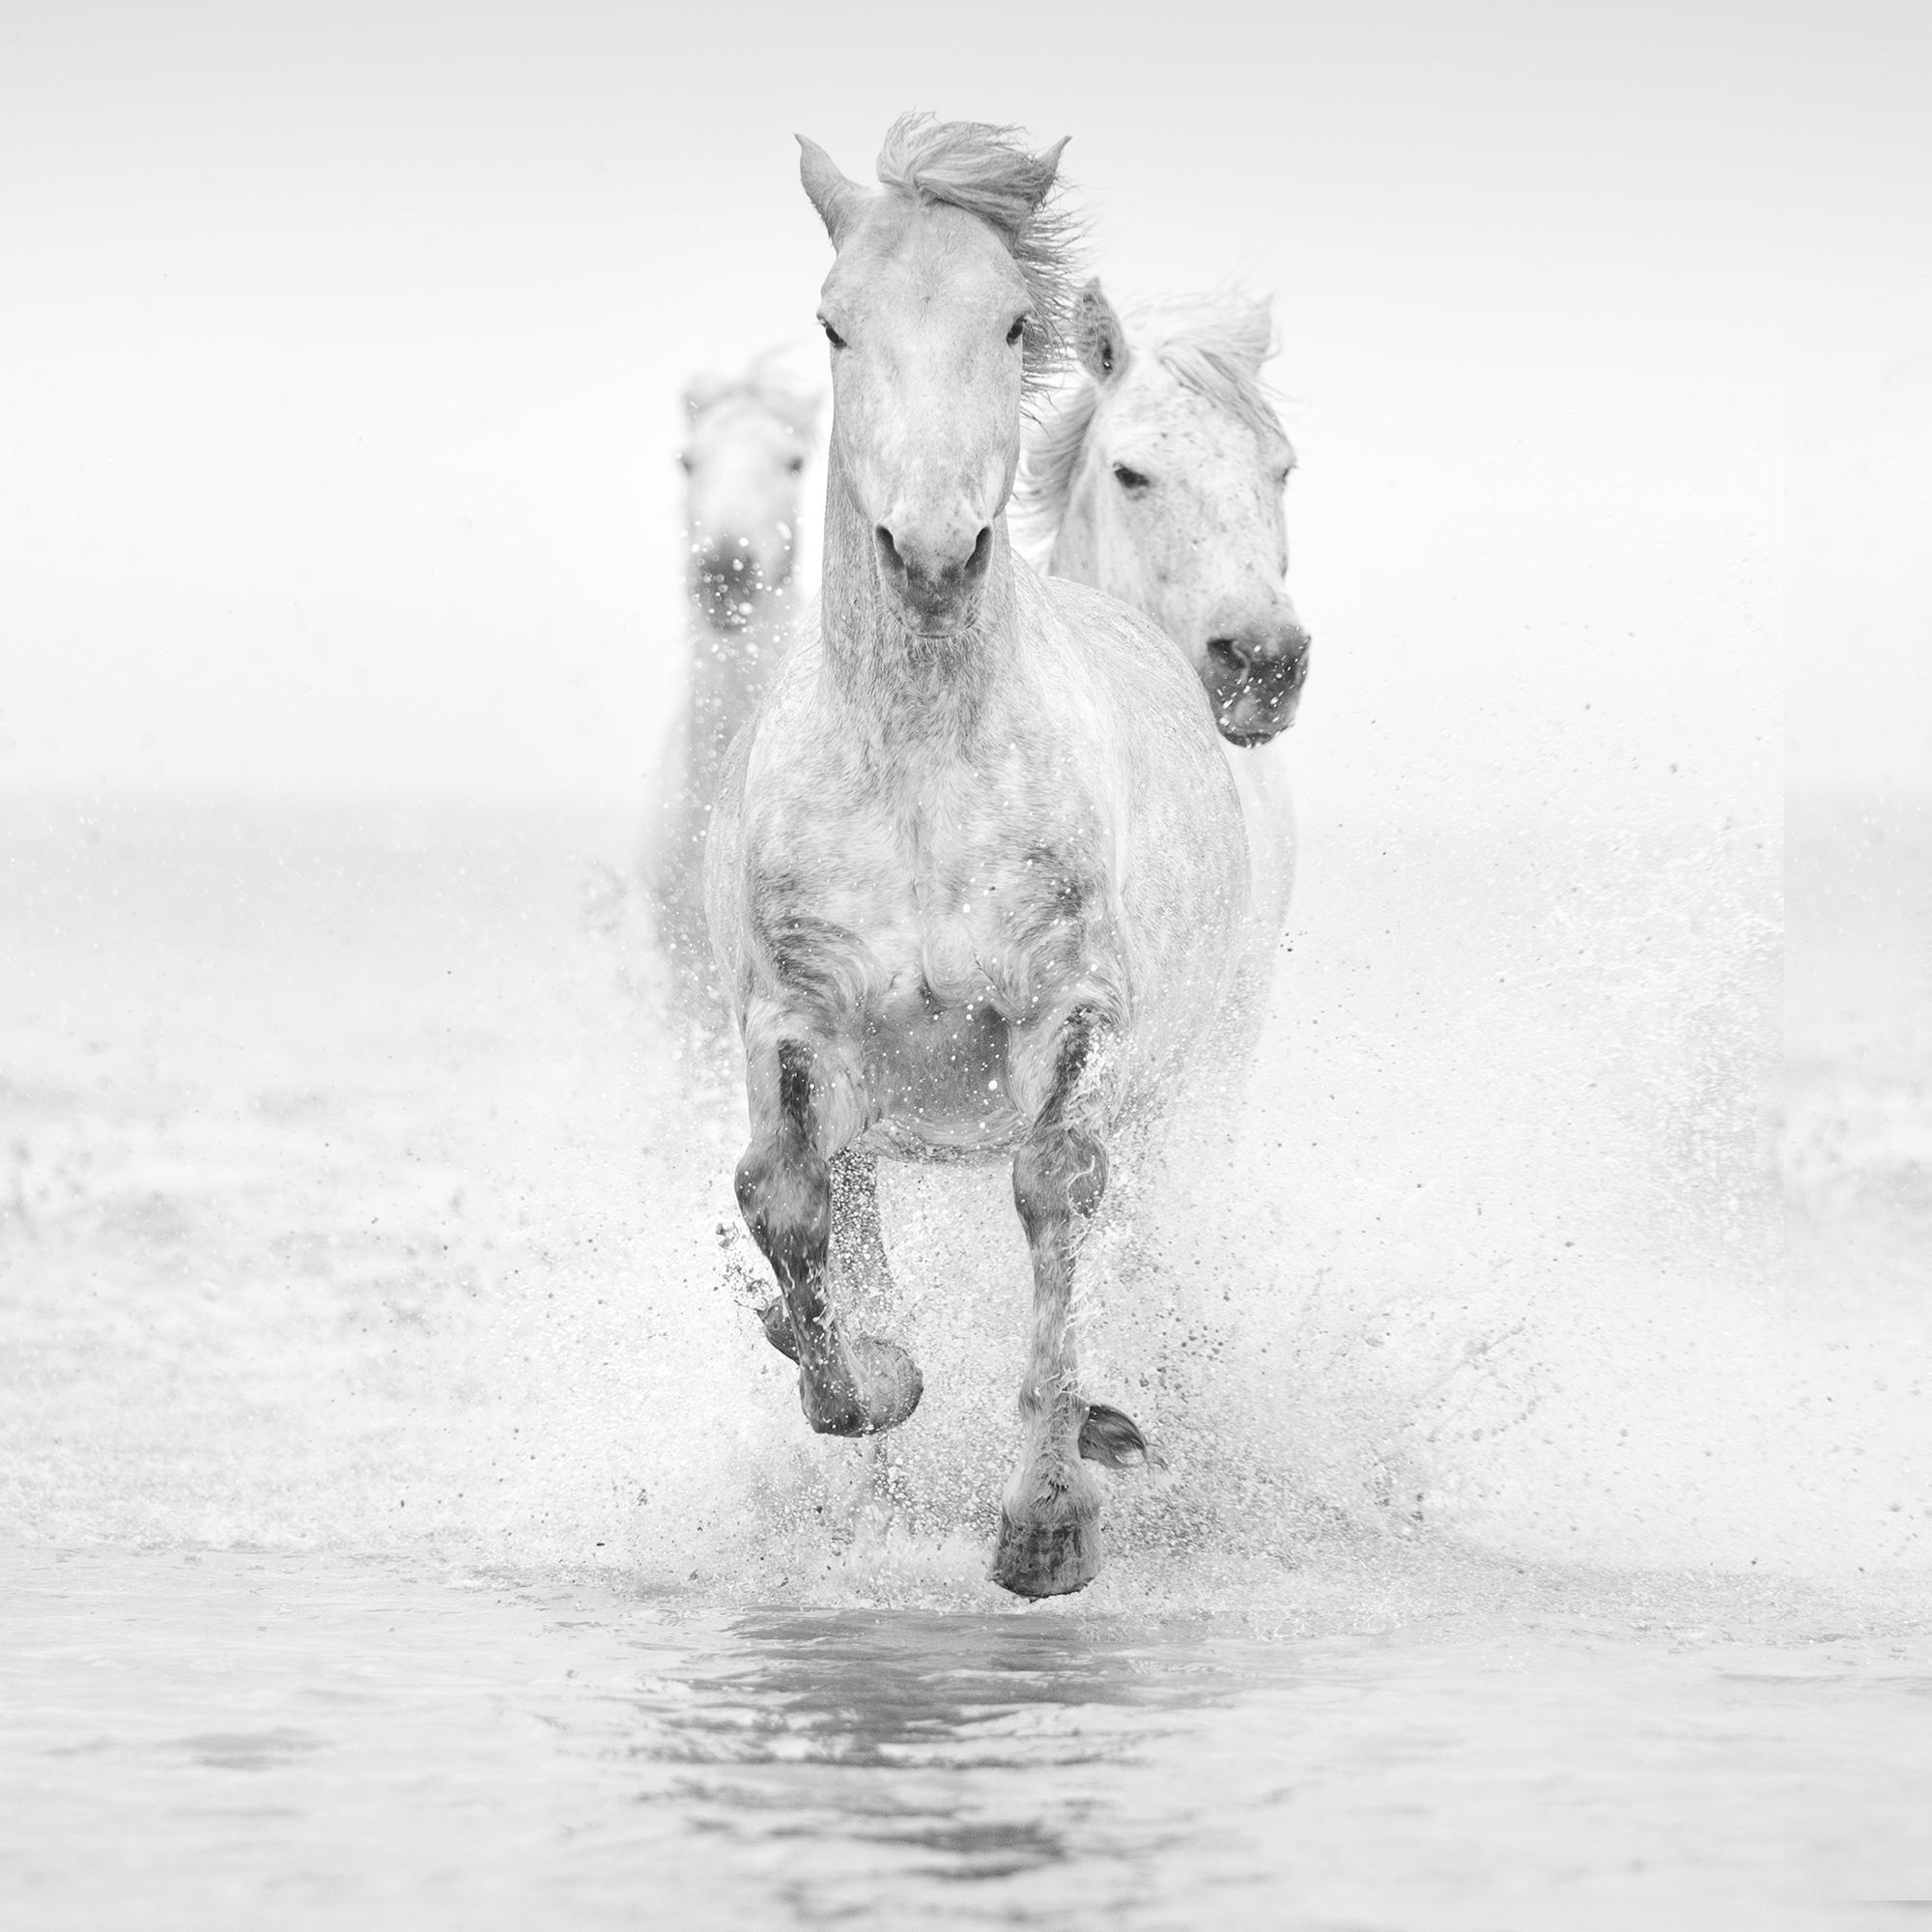 White Horses Of The Camargue Photography Tour Ocean Capture